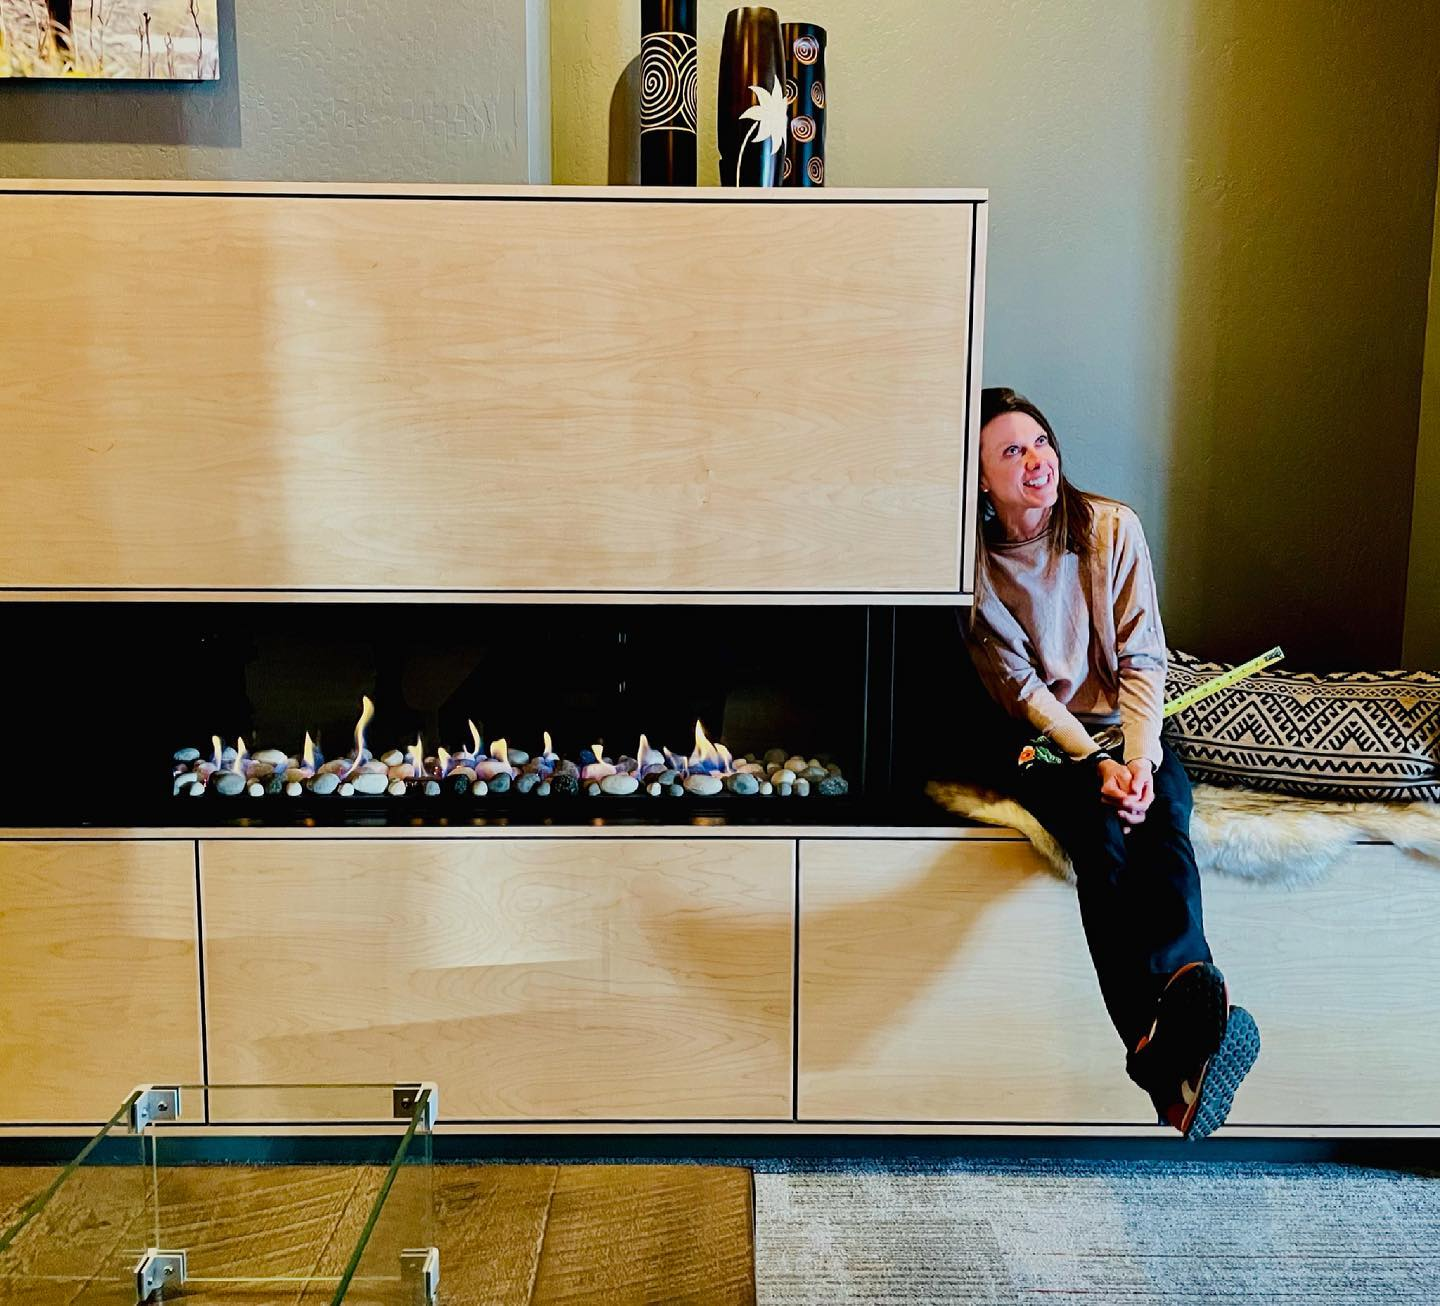 Debating fireplace sizes...doesn't all this glass look so good?? 51 inches of glass doesn't seem like too much, does it?? whitefish custom home builder